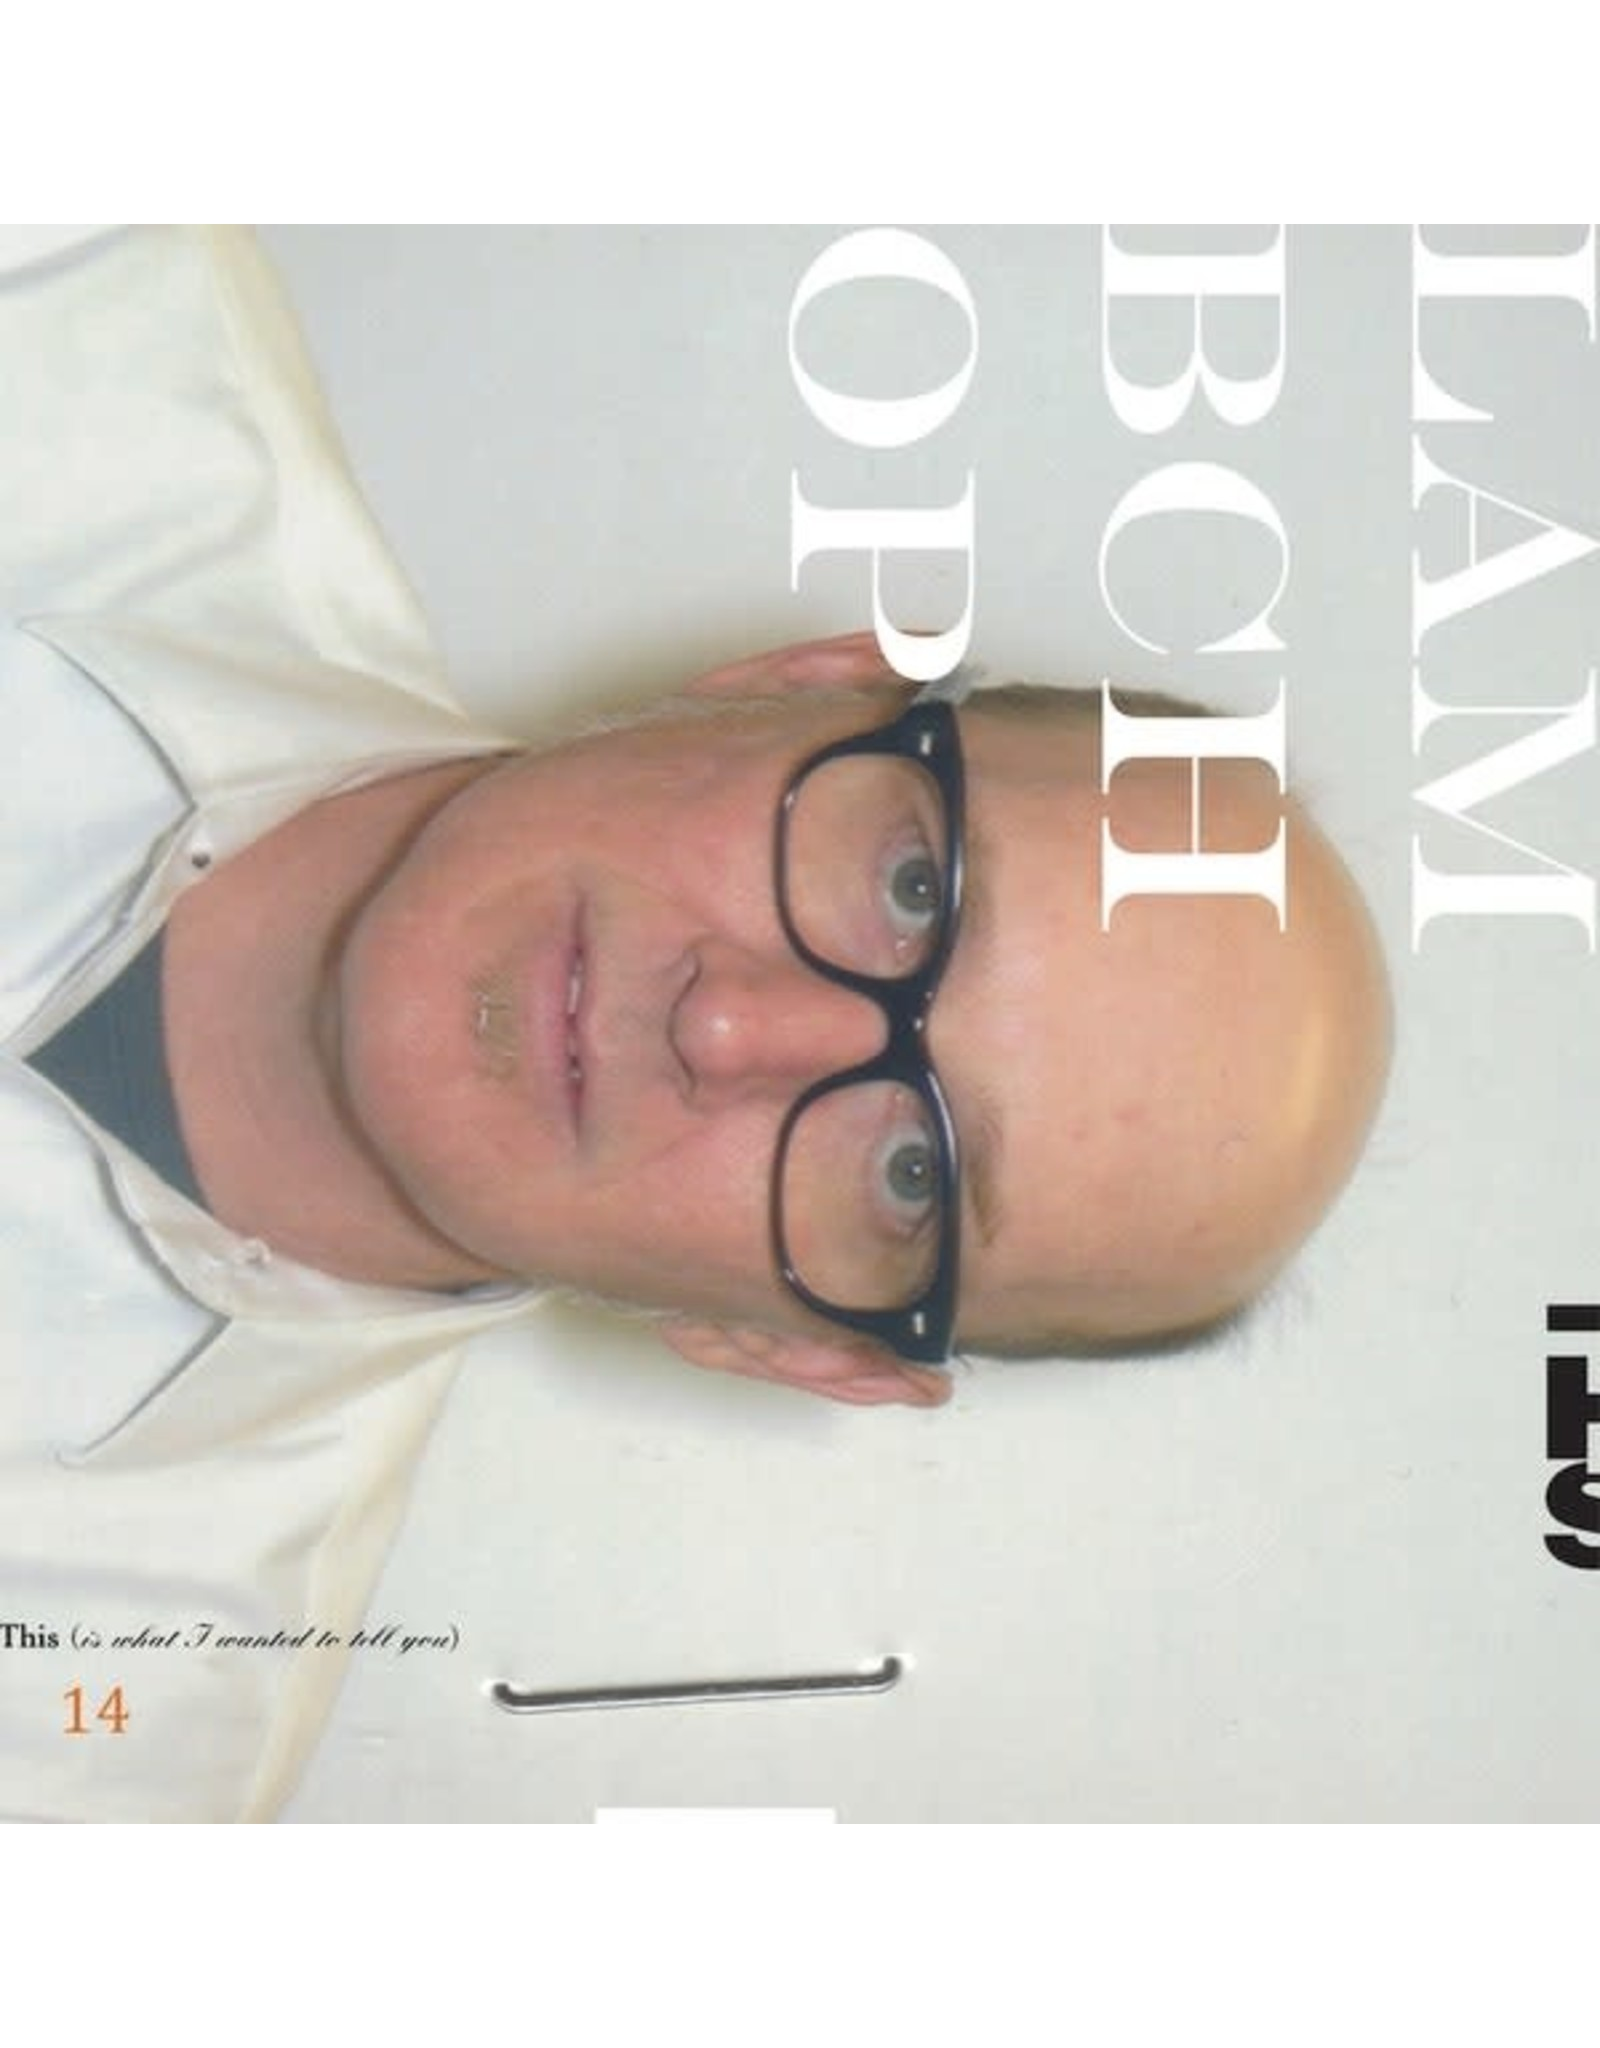 Lambchop - This (Is What I Wanted to Tell You) LP (clear)